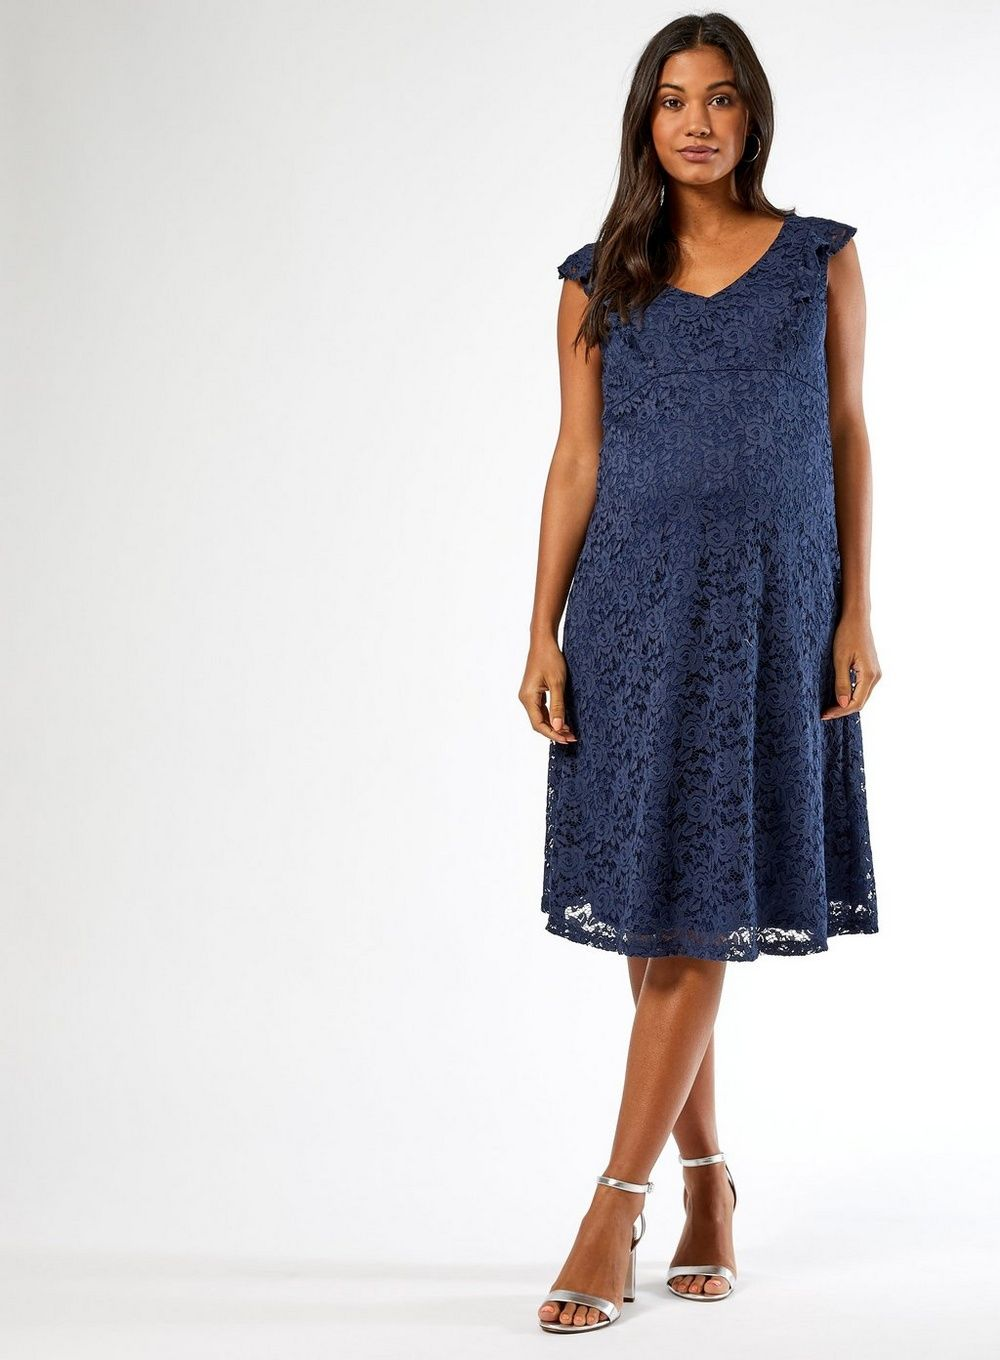 Dorothy Perkins Womens Maternity Blue Lace Fit and Flare Dress Sleeveless